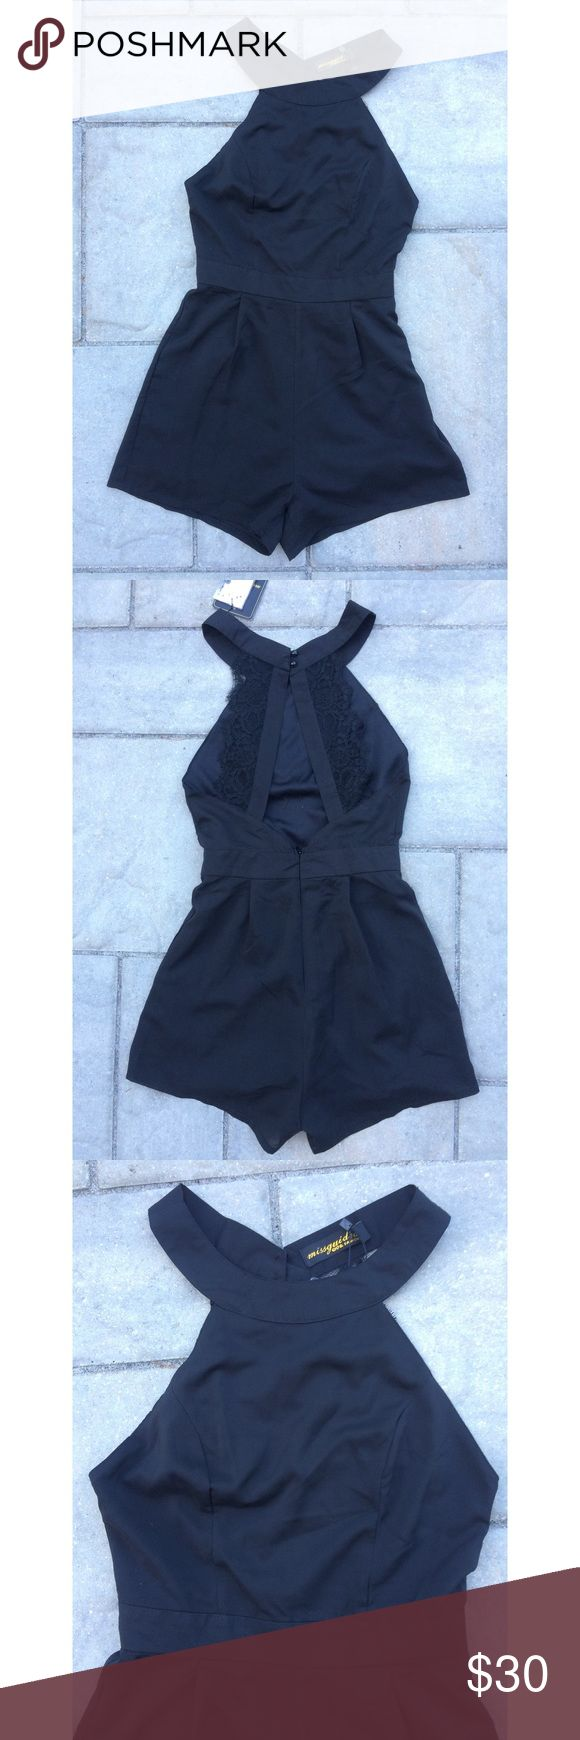 NWT Missguided Black Cutout Lace Back Romper New with tags! Black romper with a high neckline and a cutout back that has a lace trim.  Please comment with any questions or requests for measurements :) Missguided Dresses